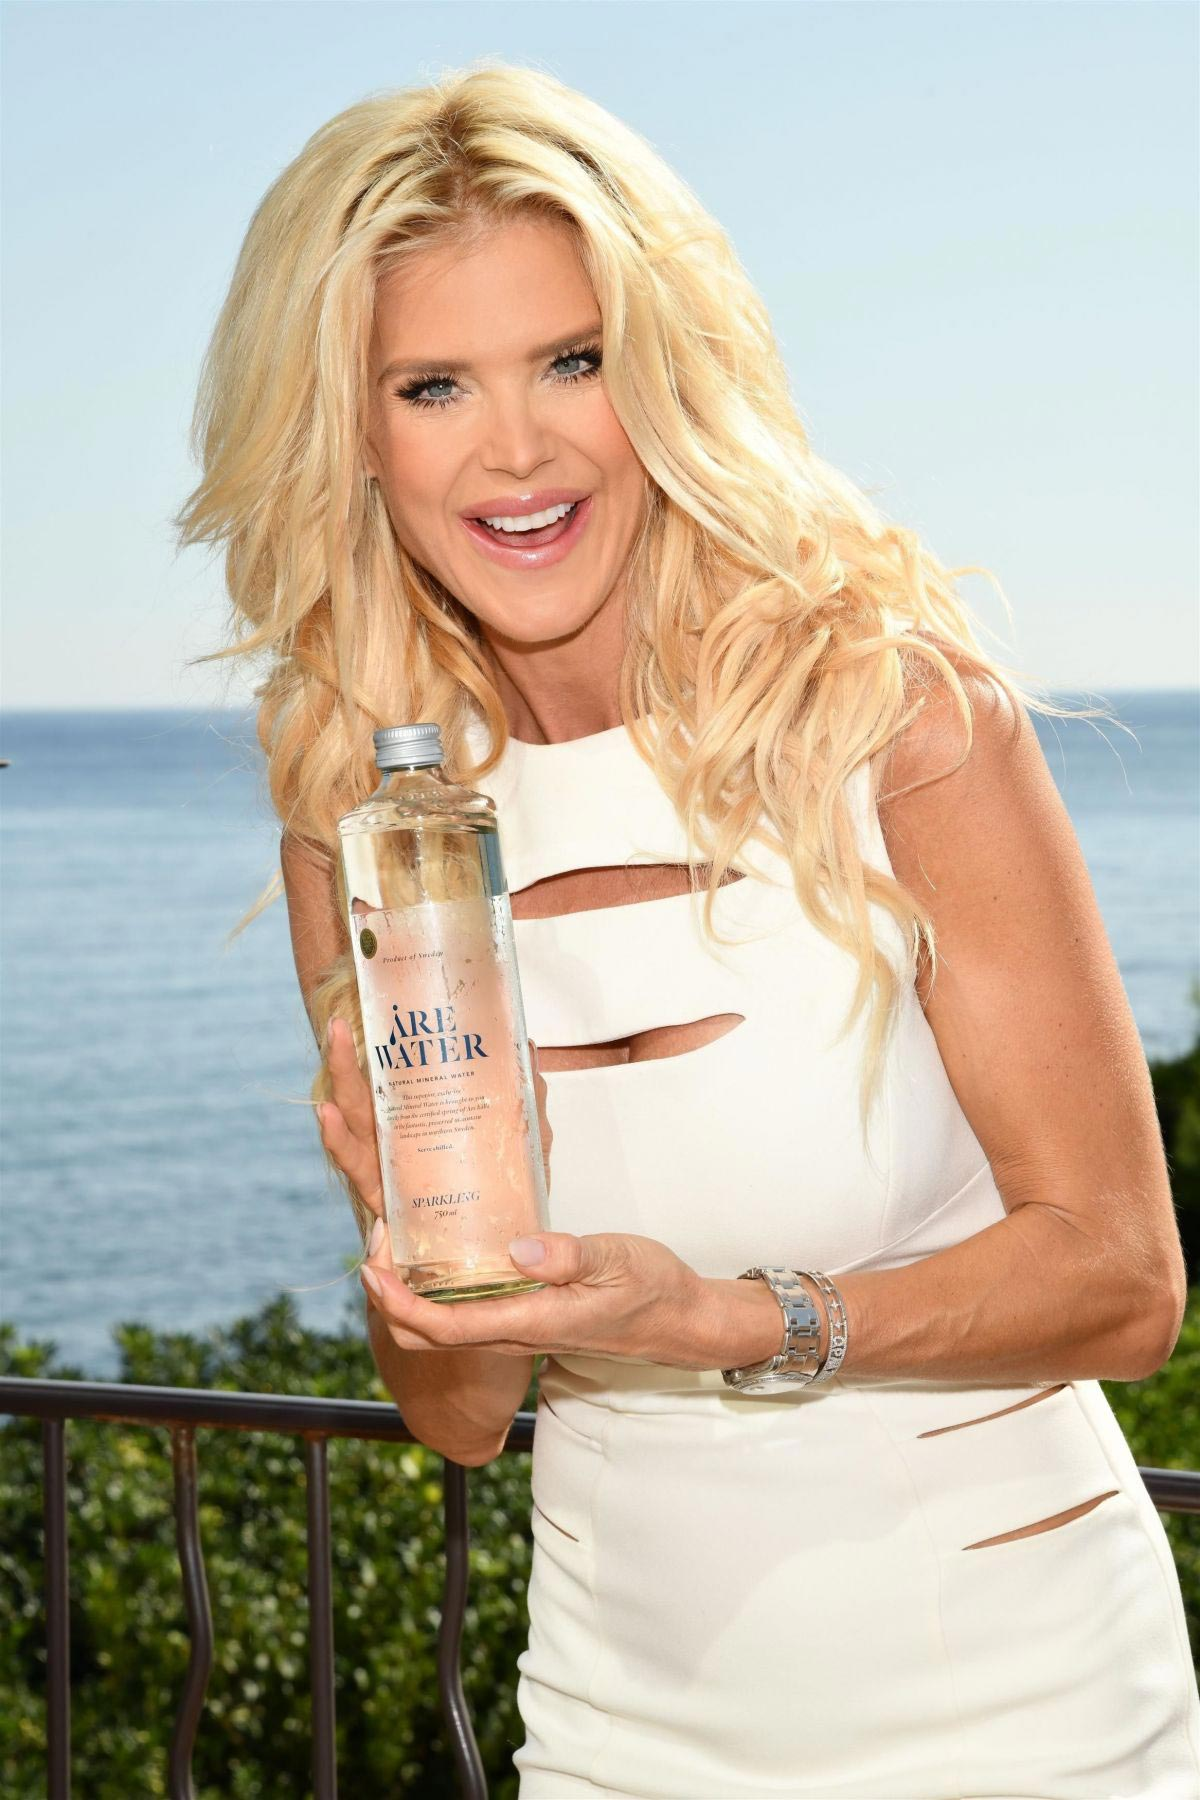 Victoria Silvstedt Promotes Swedish Water 'Are Water' in Saint-Jean-Cap-Ferrat 2018/10/19 1